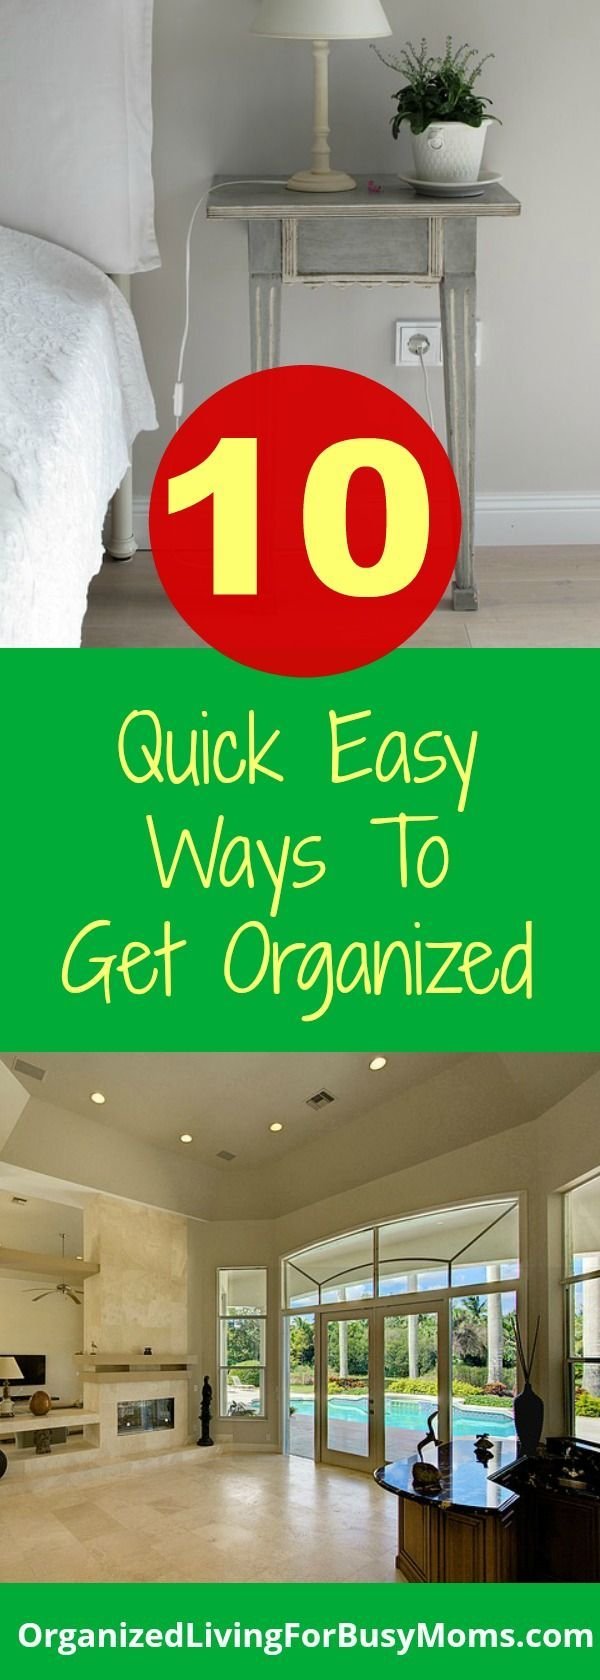 Use these ten quick, easy ways to get organized this week. Life as a busy mom can be so crazy and using organization tips can help make it a little easier along the way!